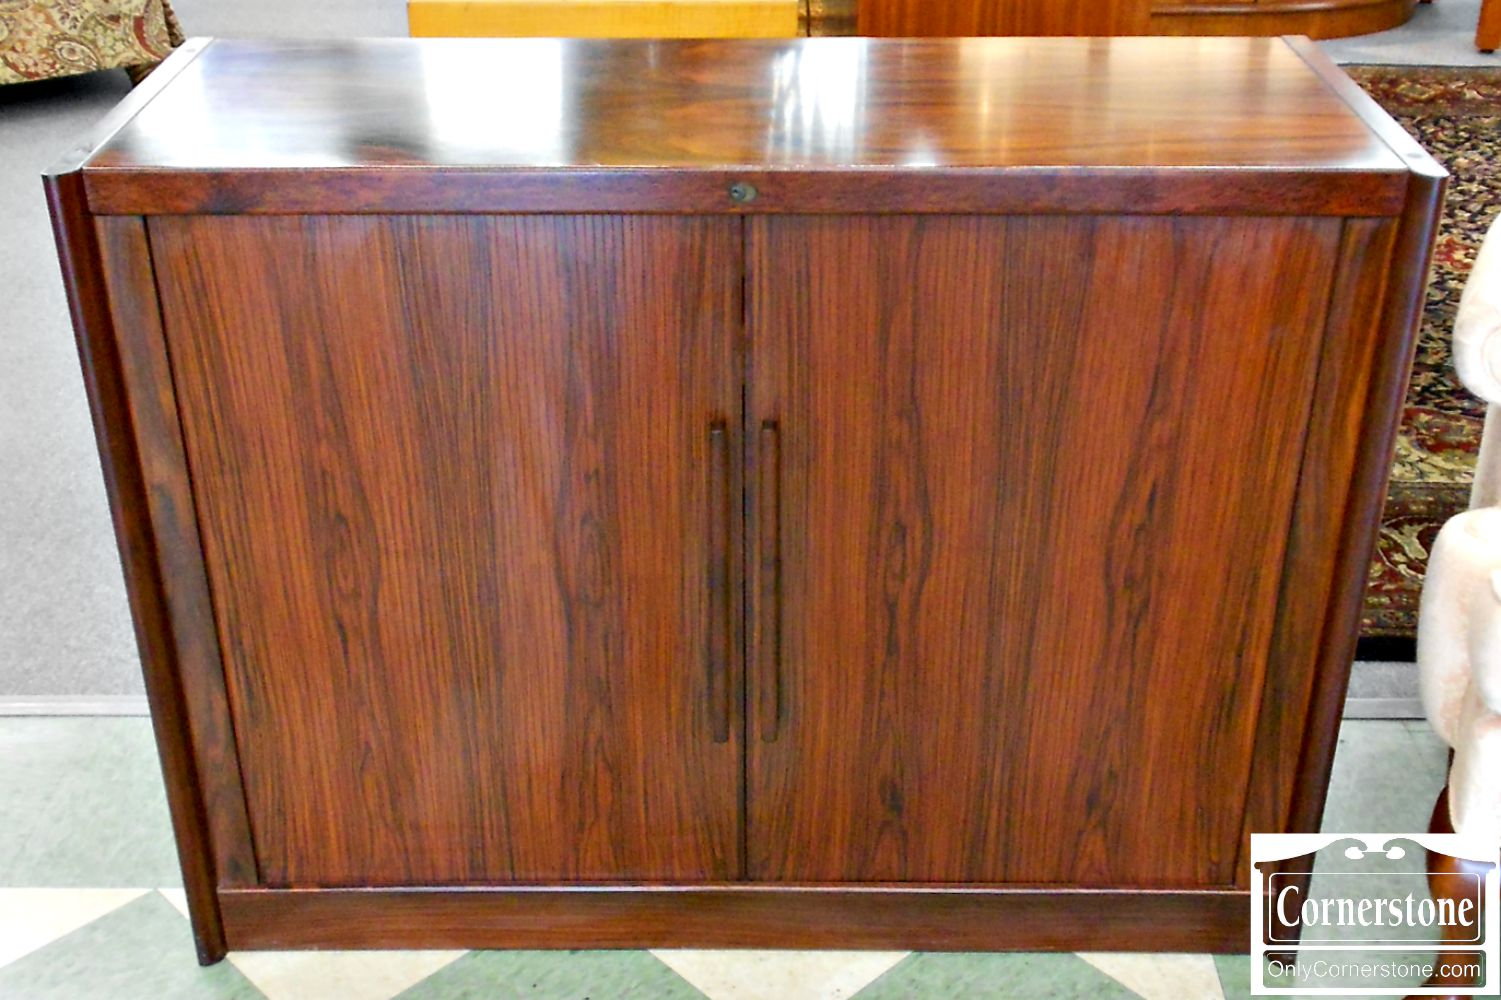 5208-819 Dyrlund Rosewood Cabinet with Interior Drawers